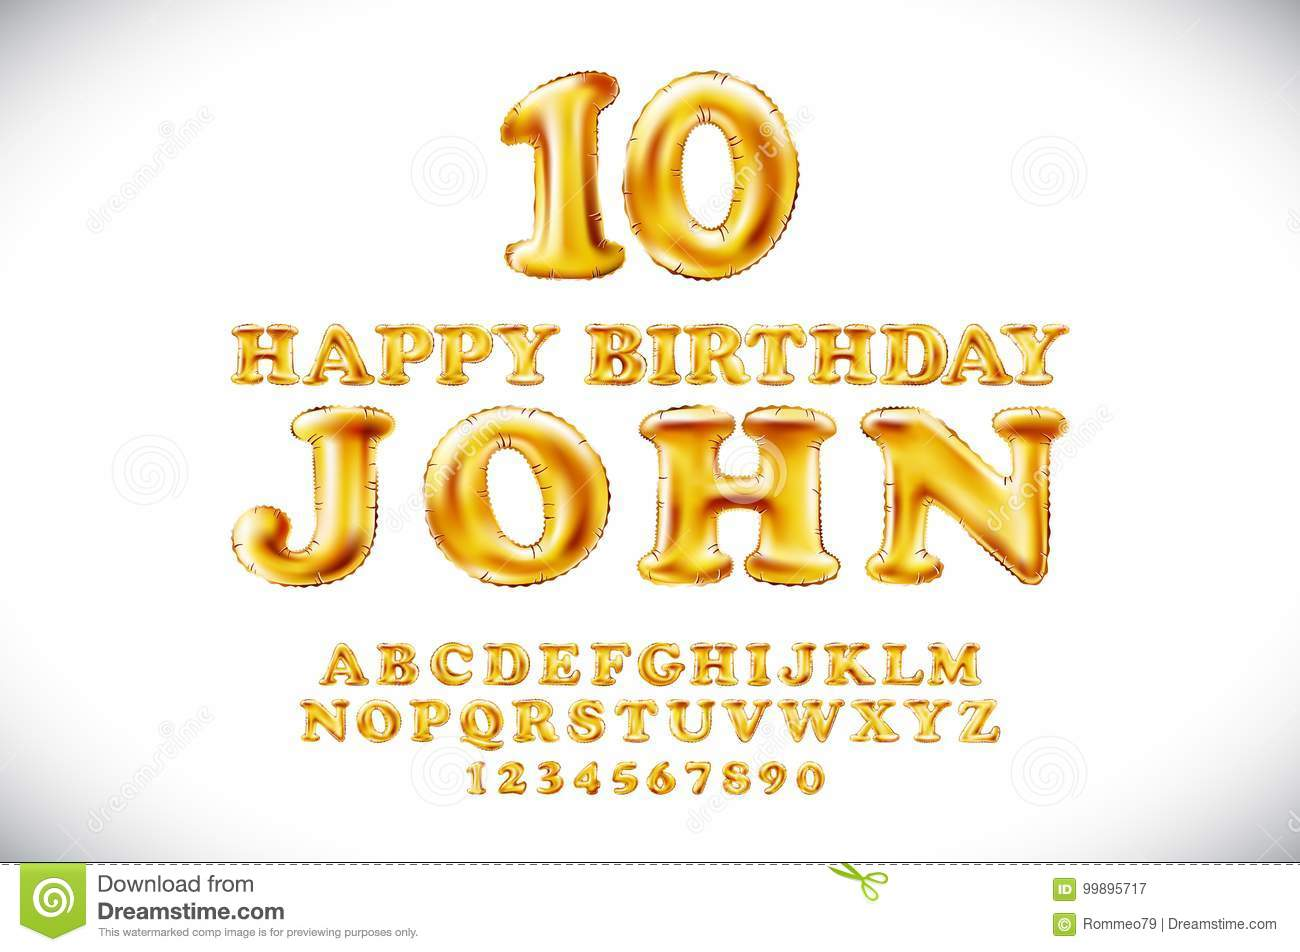 Happy Birthday JOHN Vector Metallic Gold Balloons Alphabet And Numerals From Yellow Golden On A White Background Name Holidays Letter